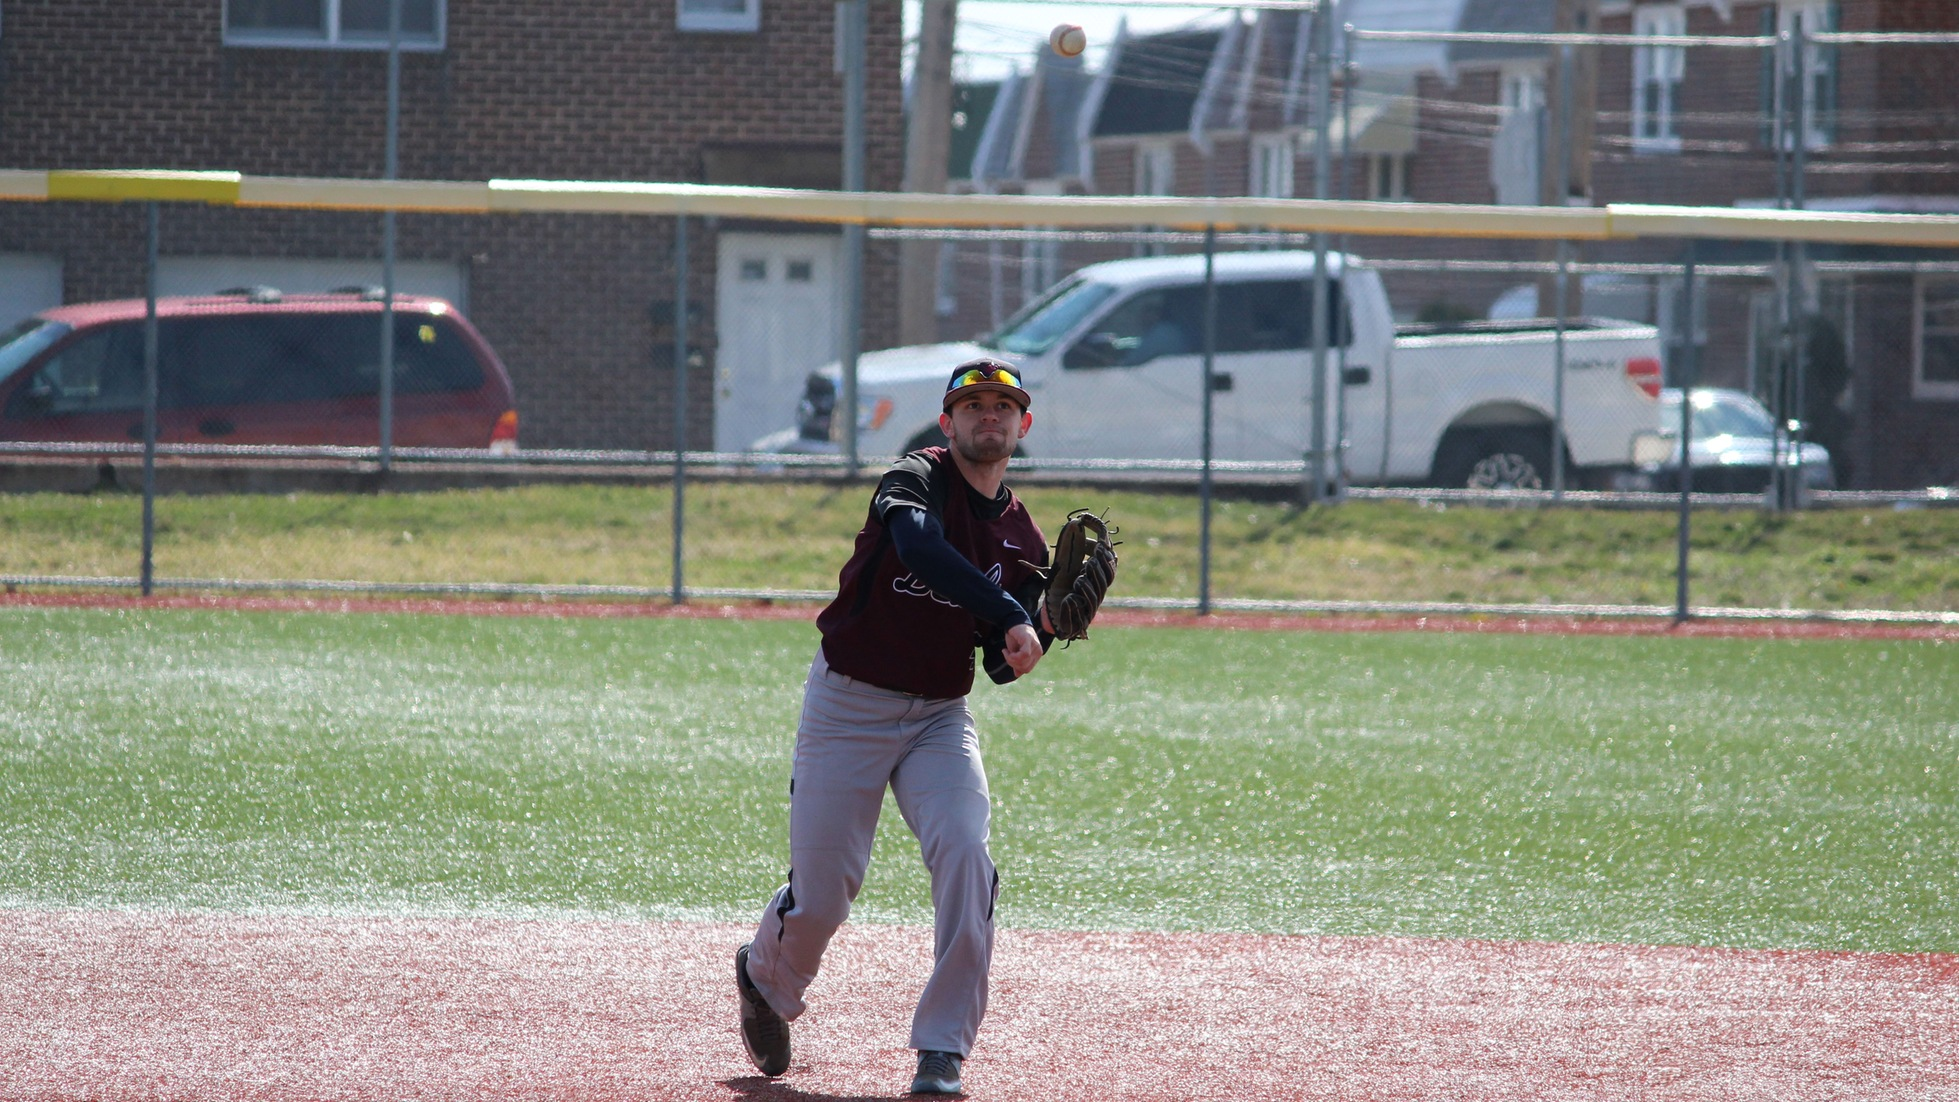 Baseball Falls To Nyack In CACC Doubleheader